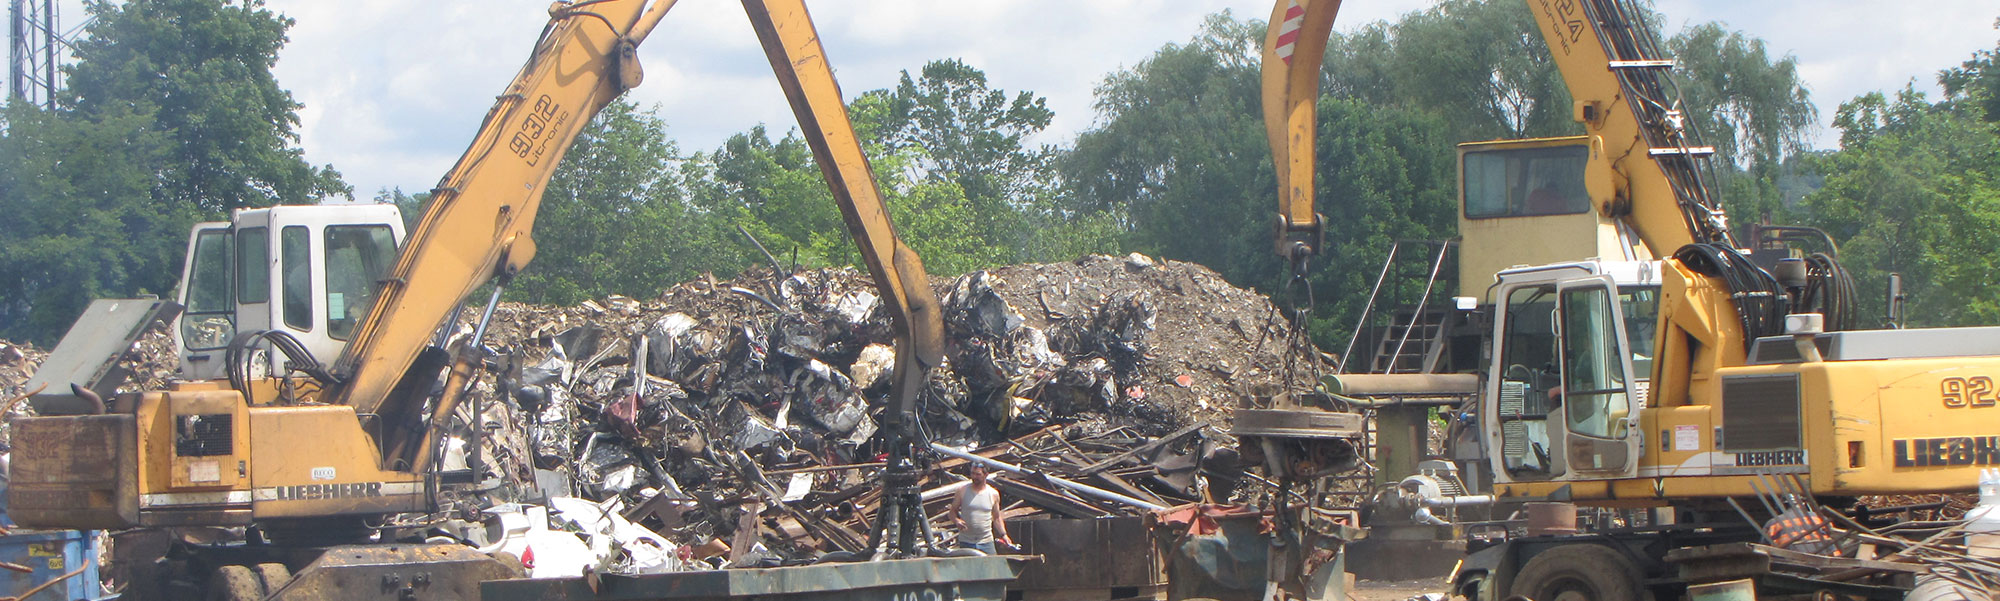 Cash for scrap metal recycling services in Elkins, WV